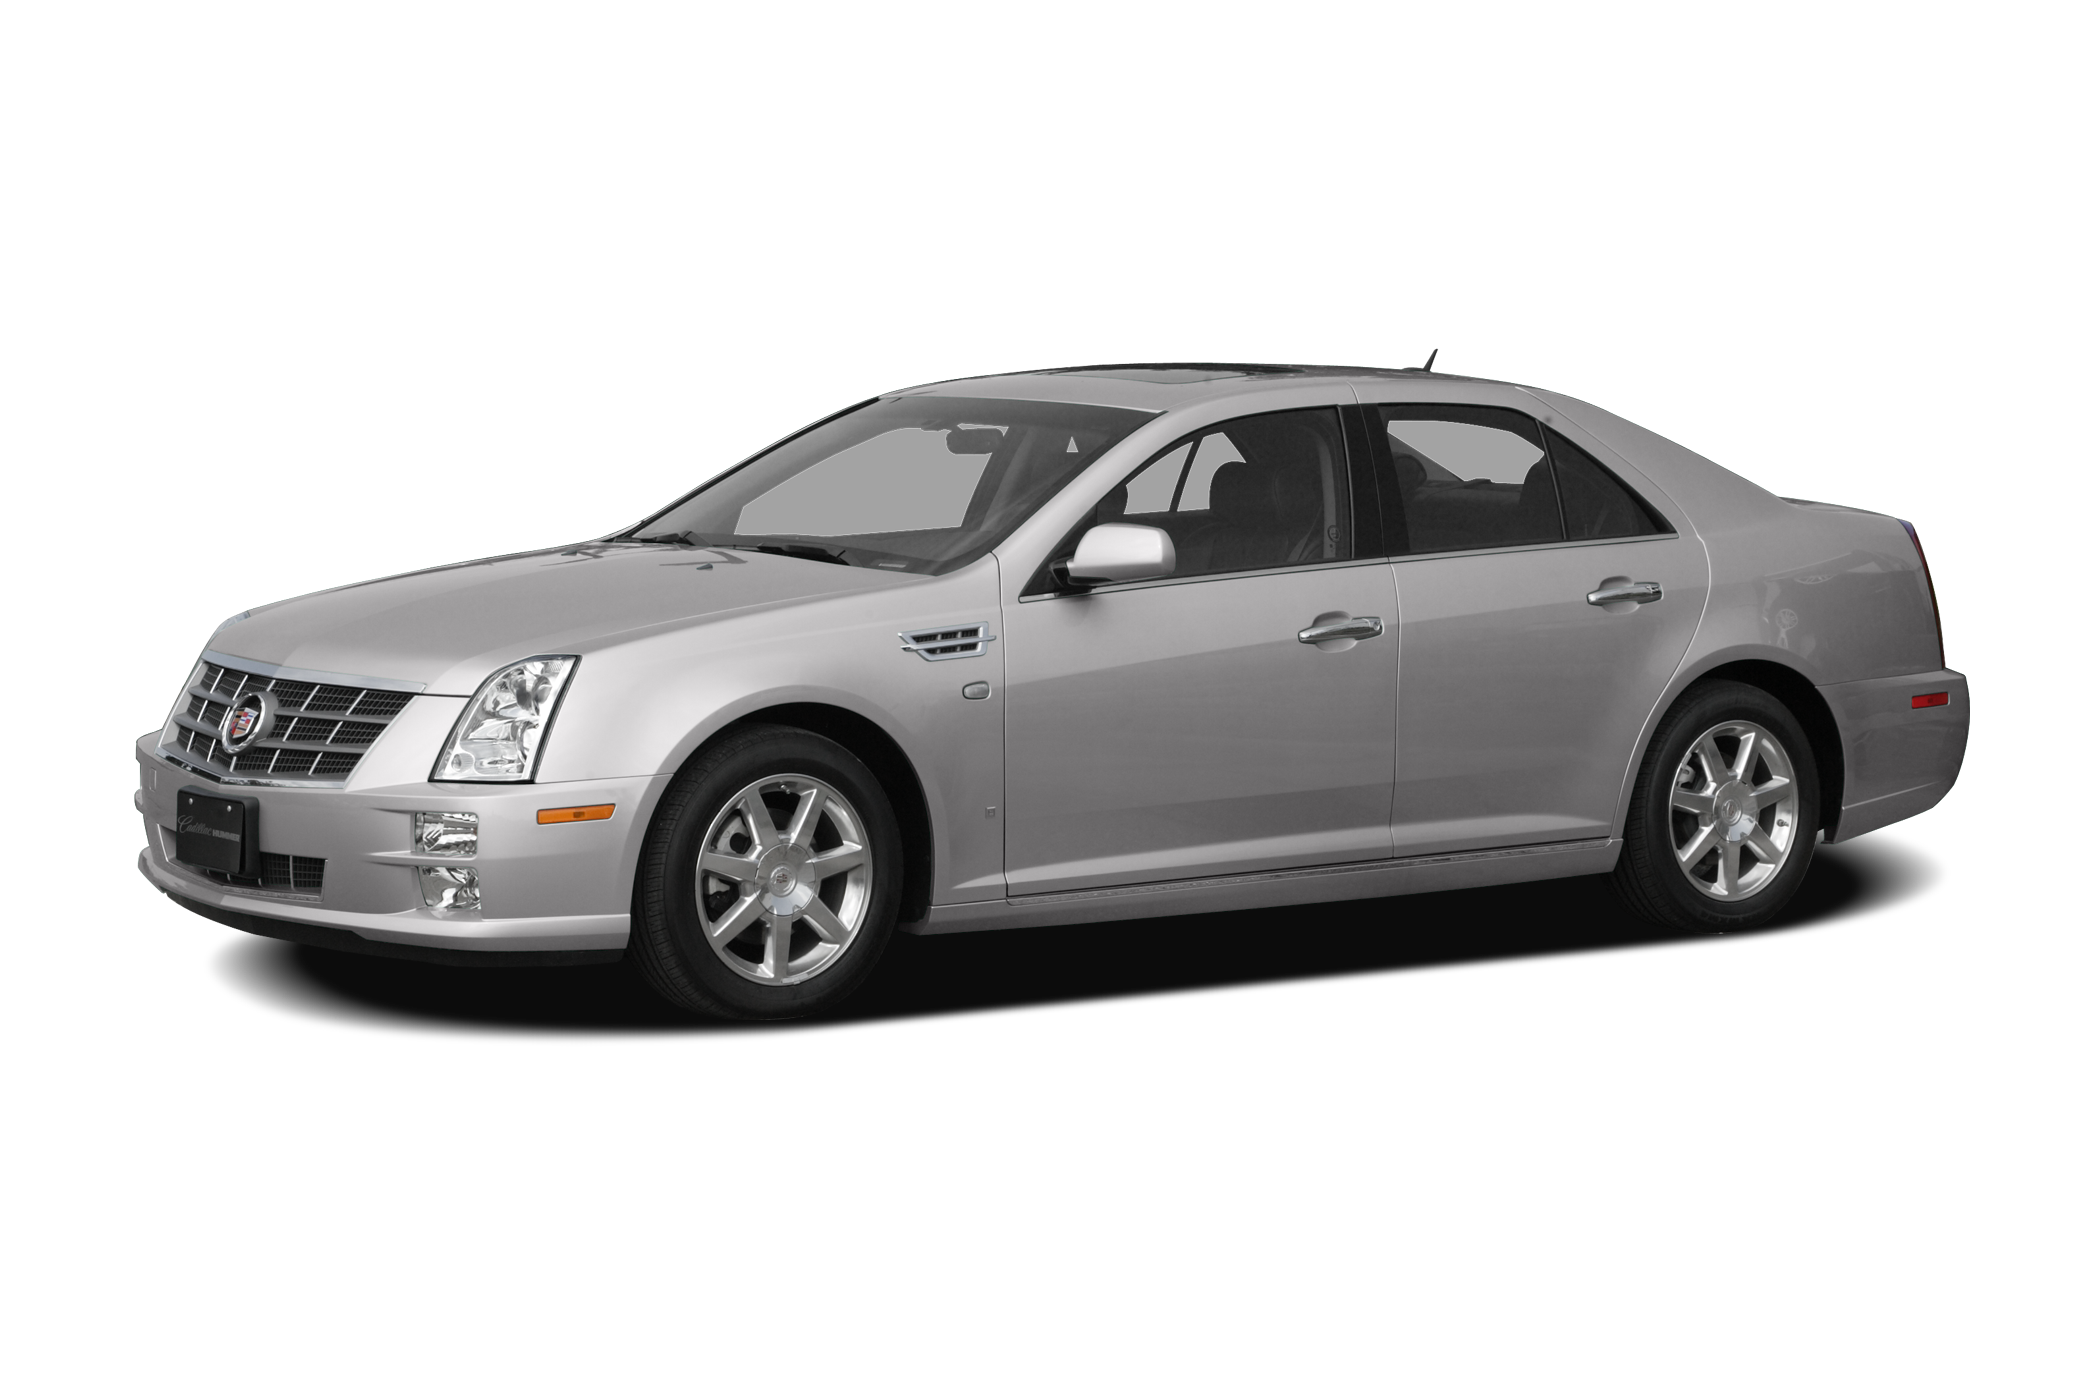 2008 Cadillac STS - View Specs, Prices & Photos - WHEELS.ca